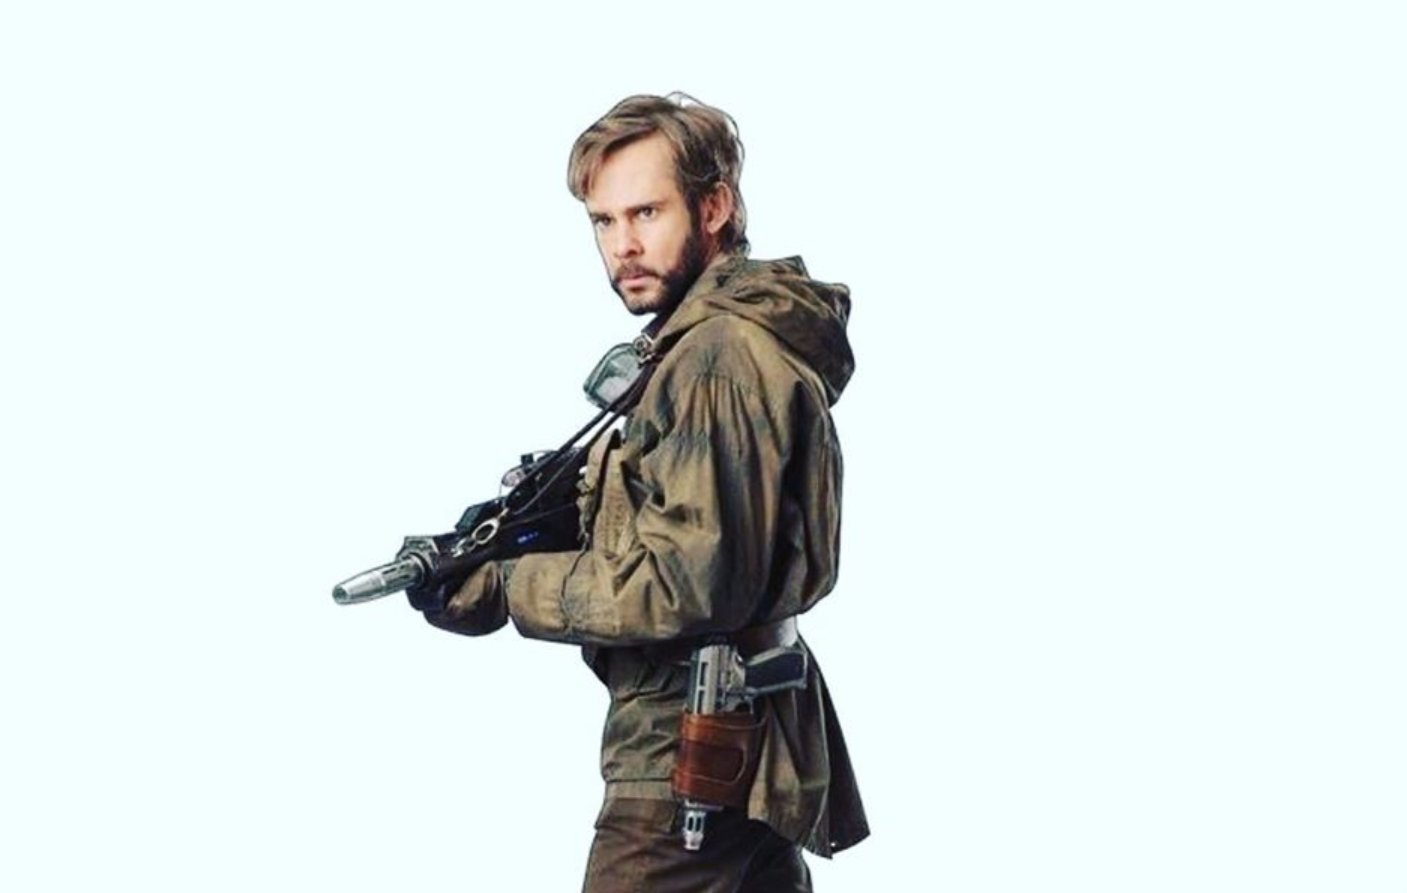 Dominic Monaghan On His Role In Star Wars The Rise Of Skywalker Star Wars News Net